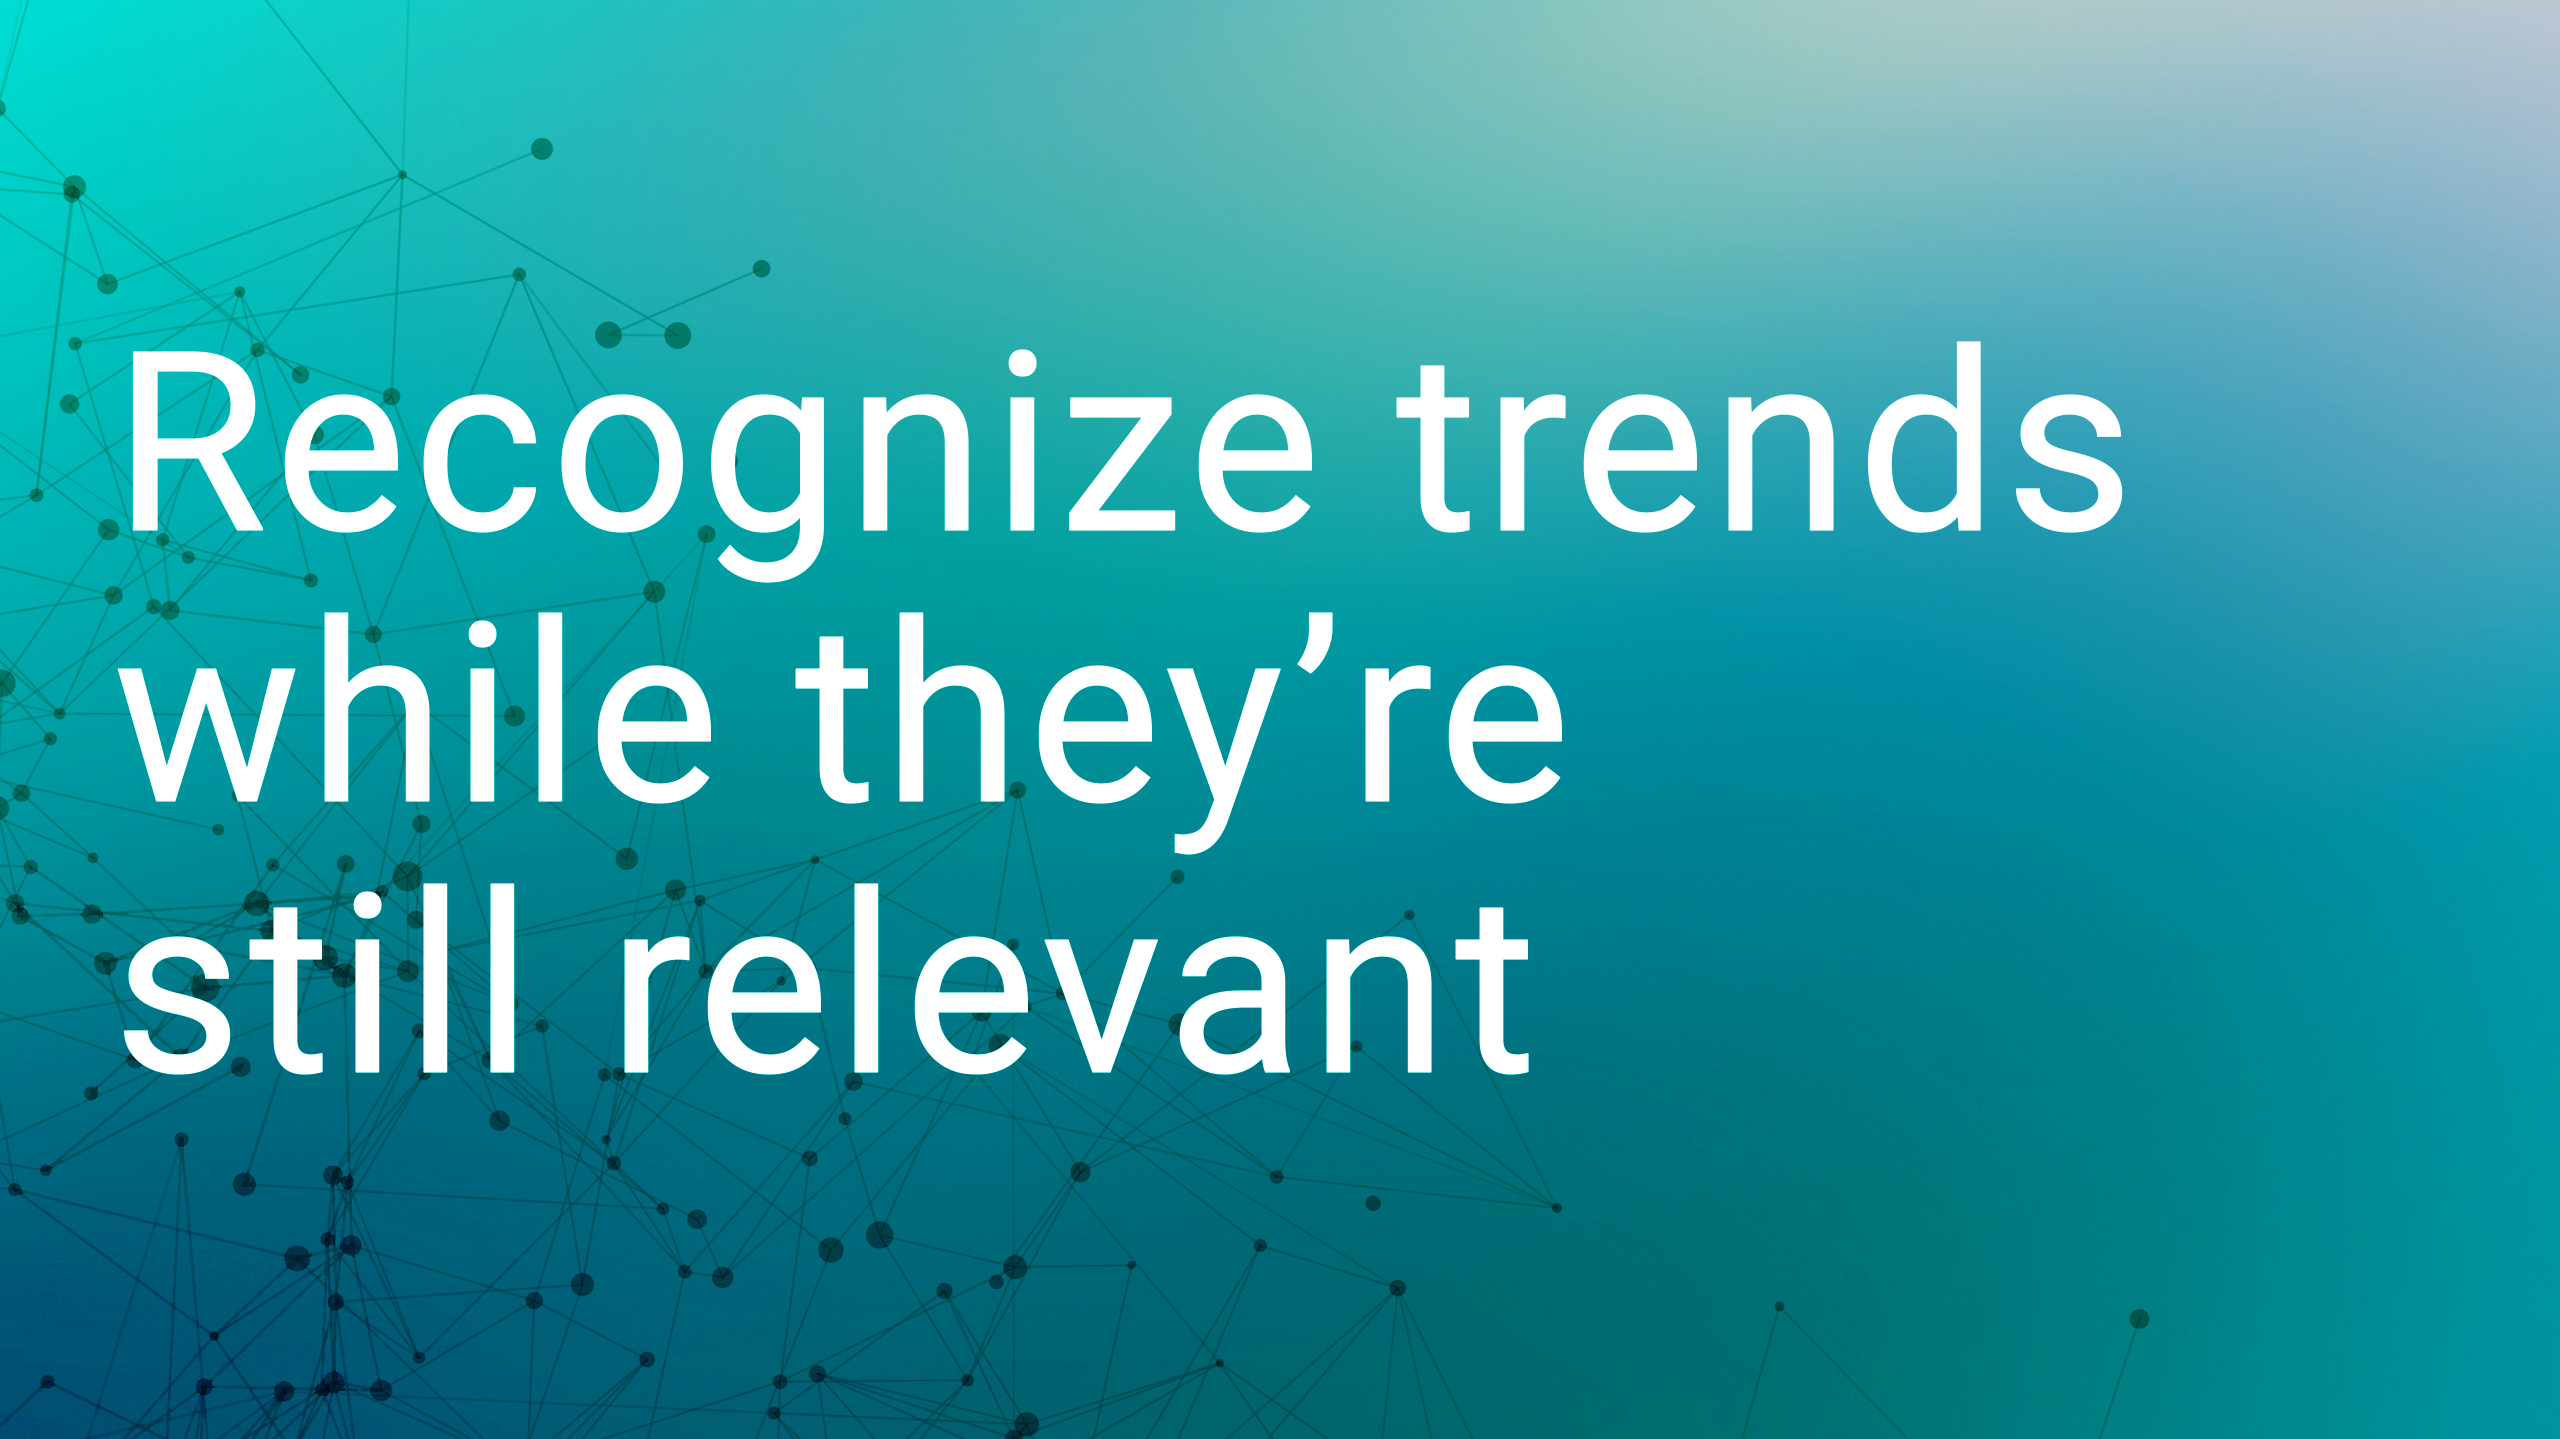 Recognize trends while they are still relevant